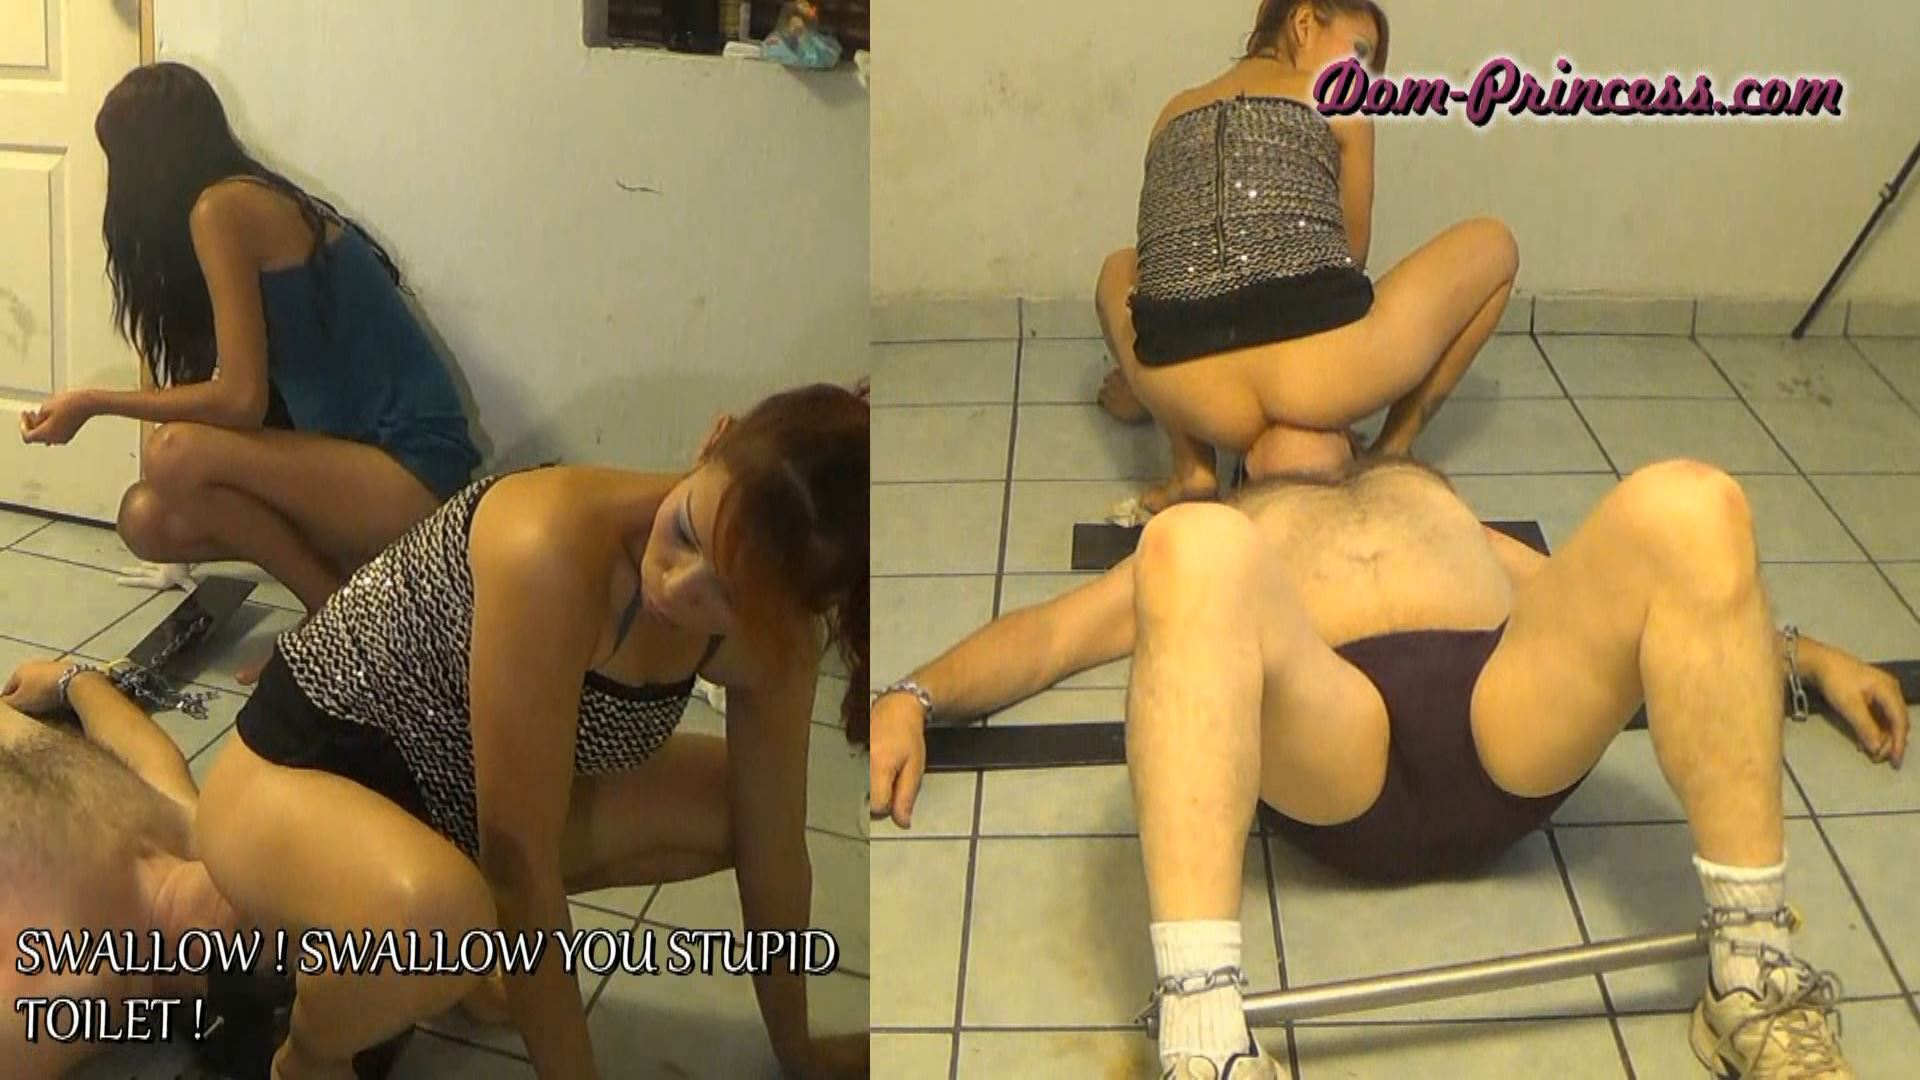 Sit on Mouth Push Transaction Part 4 Christine - SCAT-PRINCESS - FULL HD/1080p/WMV